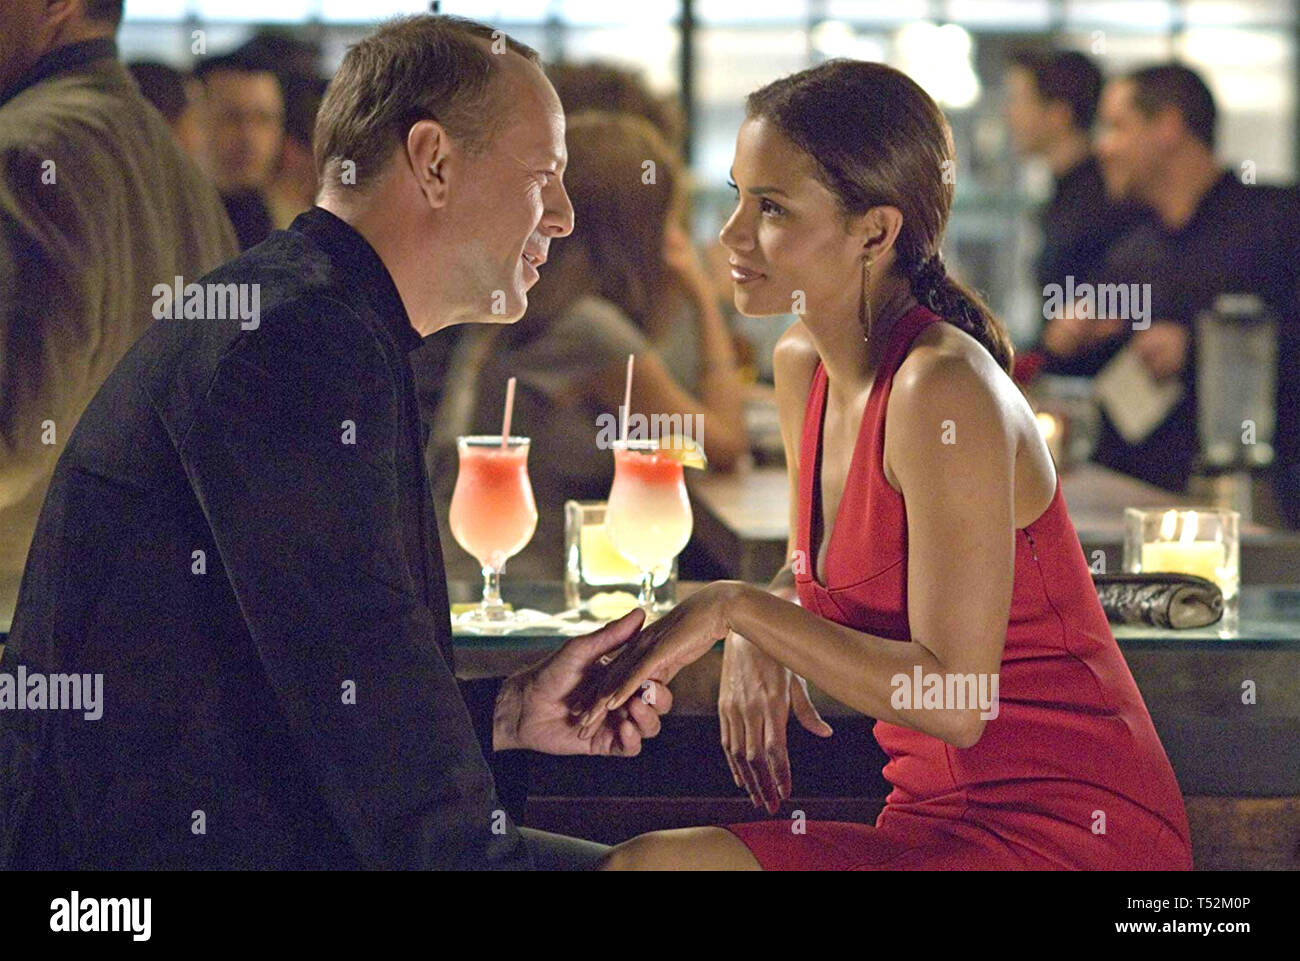 PERFECT STRANGER 2007 Revolution Studios film with Halle Berry and Bruce Willis - Stock Image